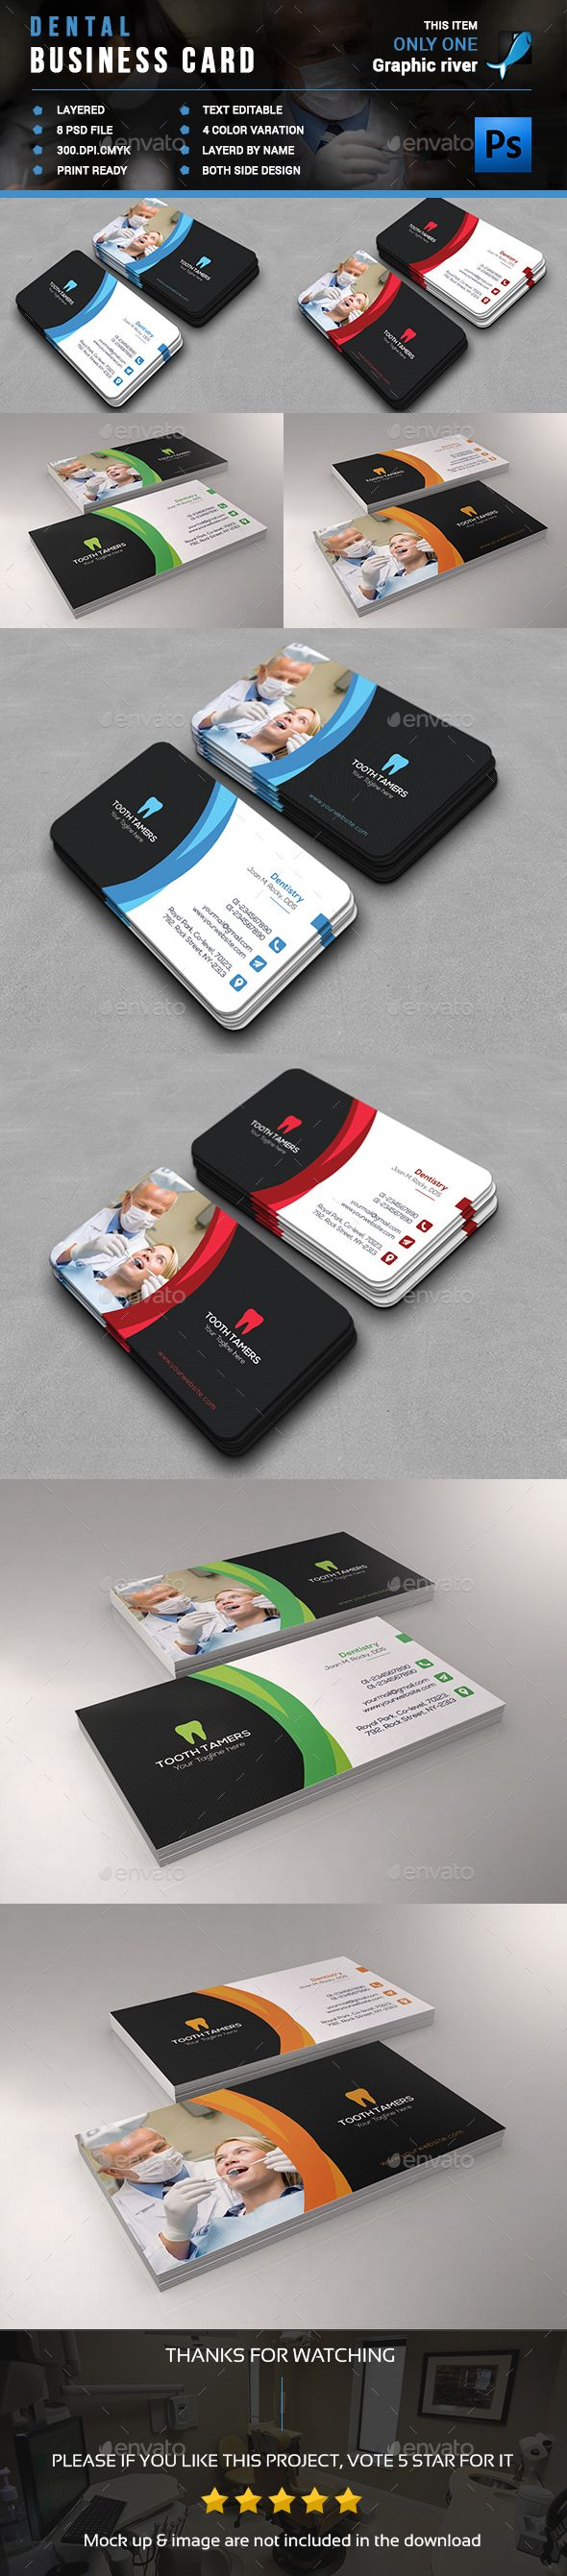 16 Best Business Card Graphic River Images On Pinterest Business